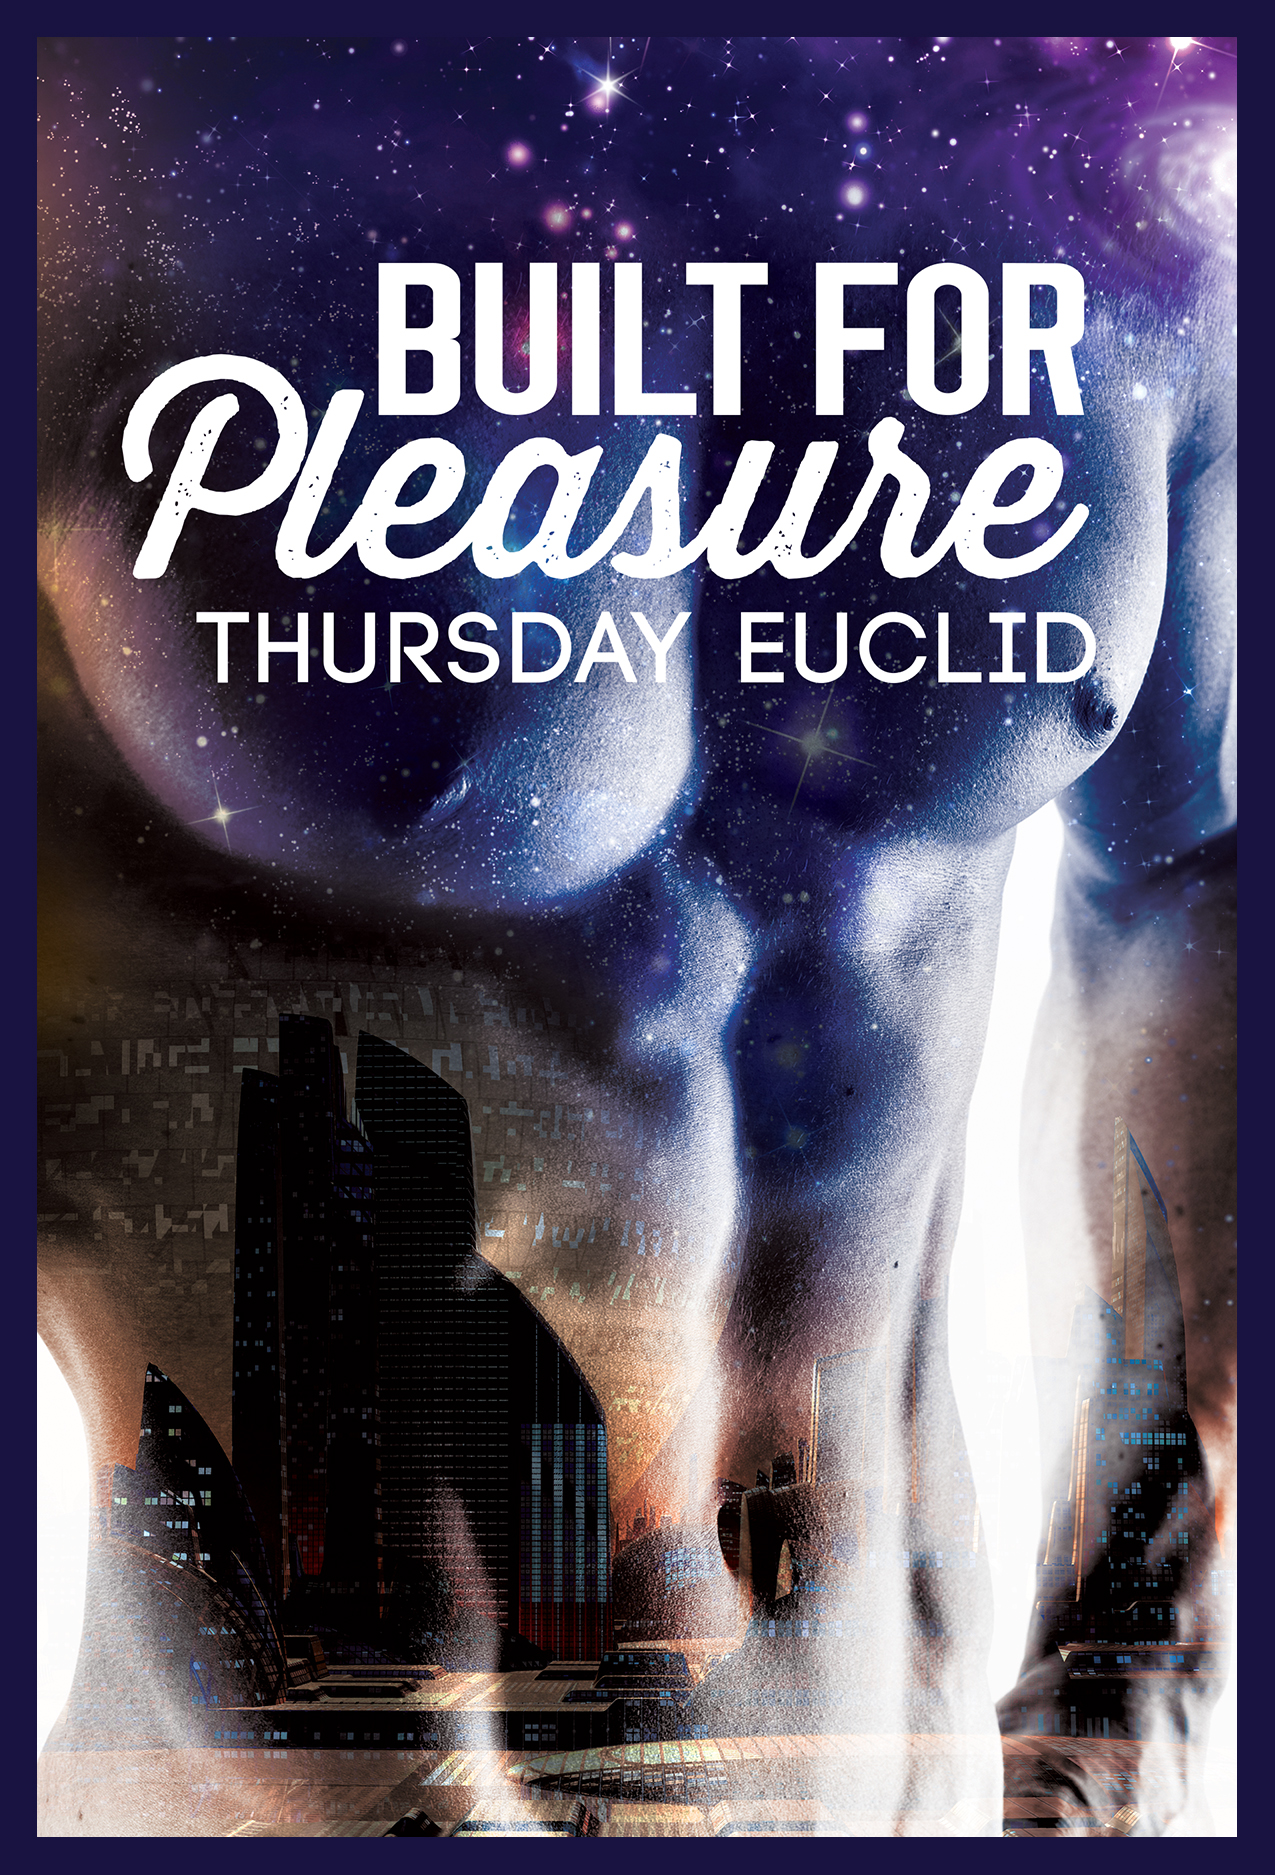 Built for Pleasure by Thursday Euclid